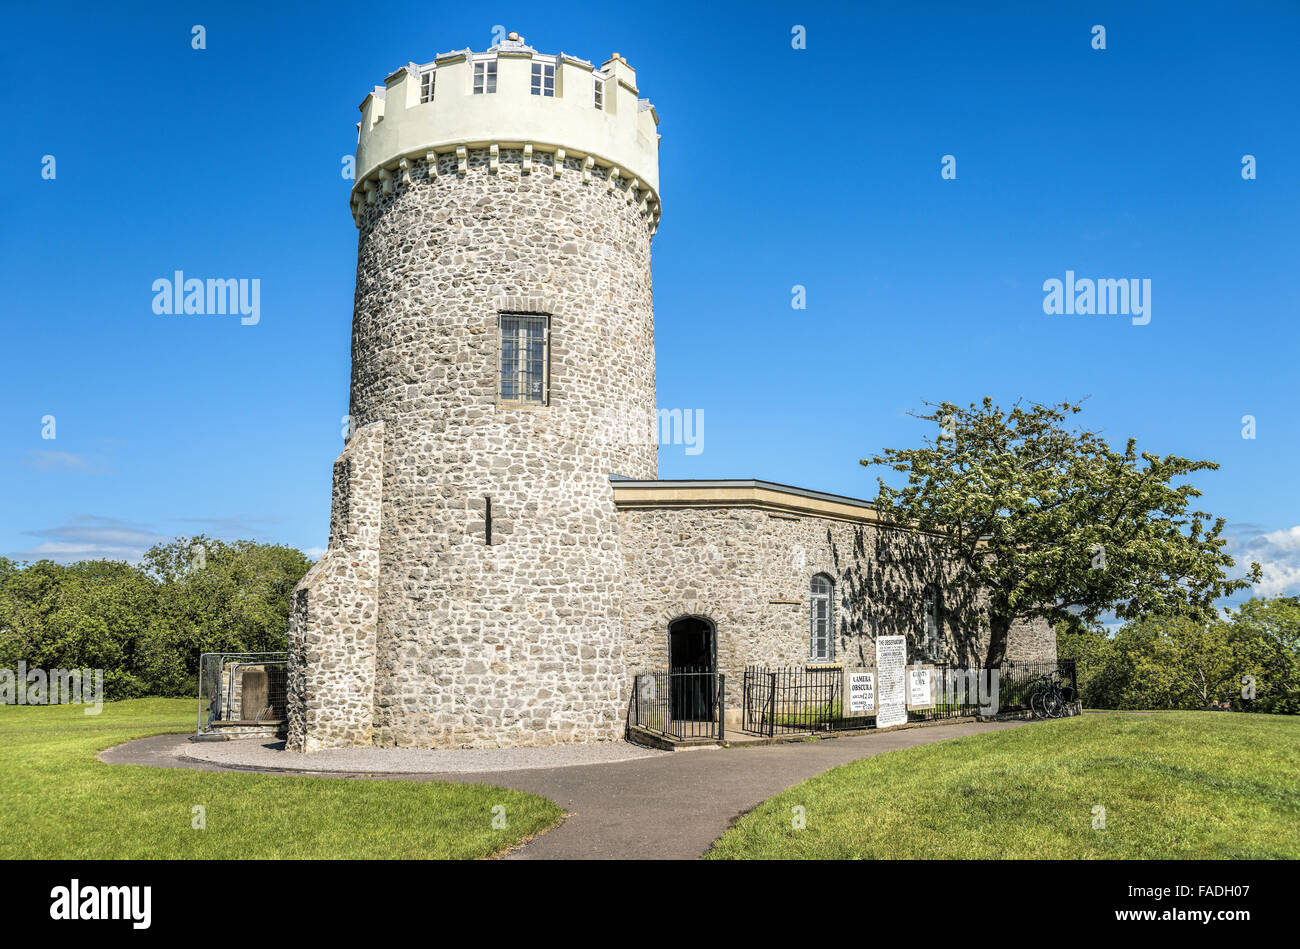 The Observatory with its Camera Obscura at the Clifton Suspension Bridge, Bristol, Somerset, England - Stock Image